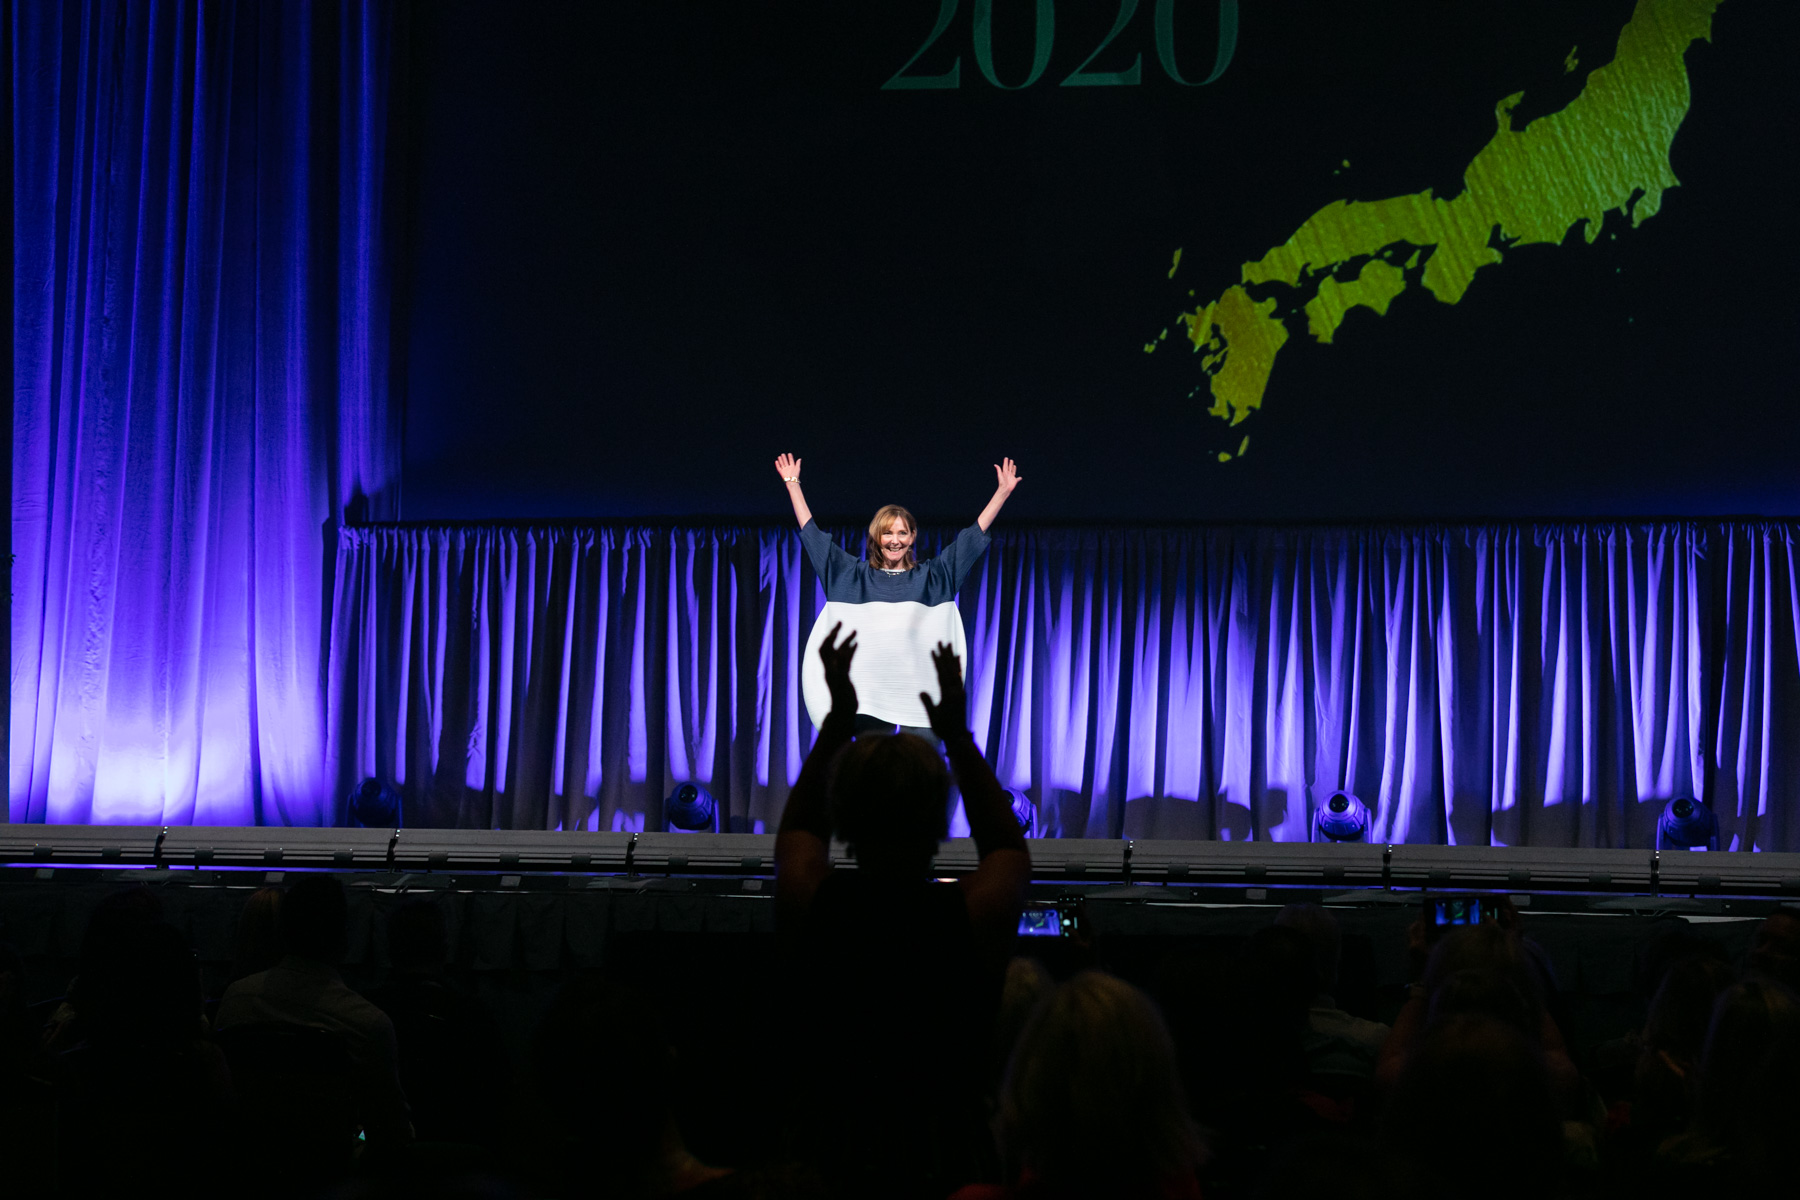 Margo Moritz captures a speaker onstage raising her hands in the air, shadowed by an audience member making a similar gesture